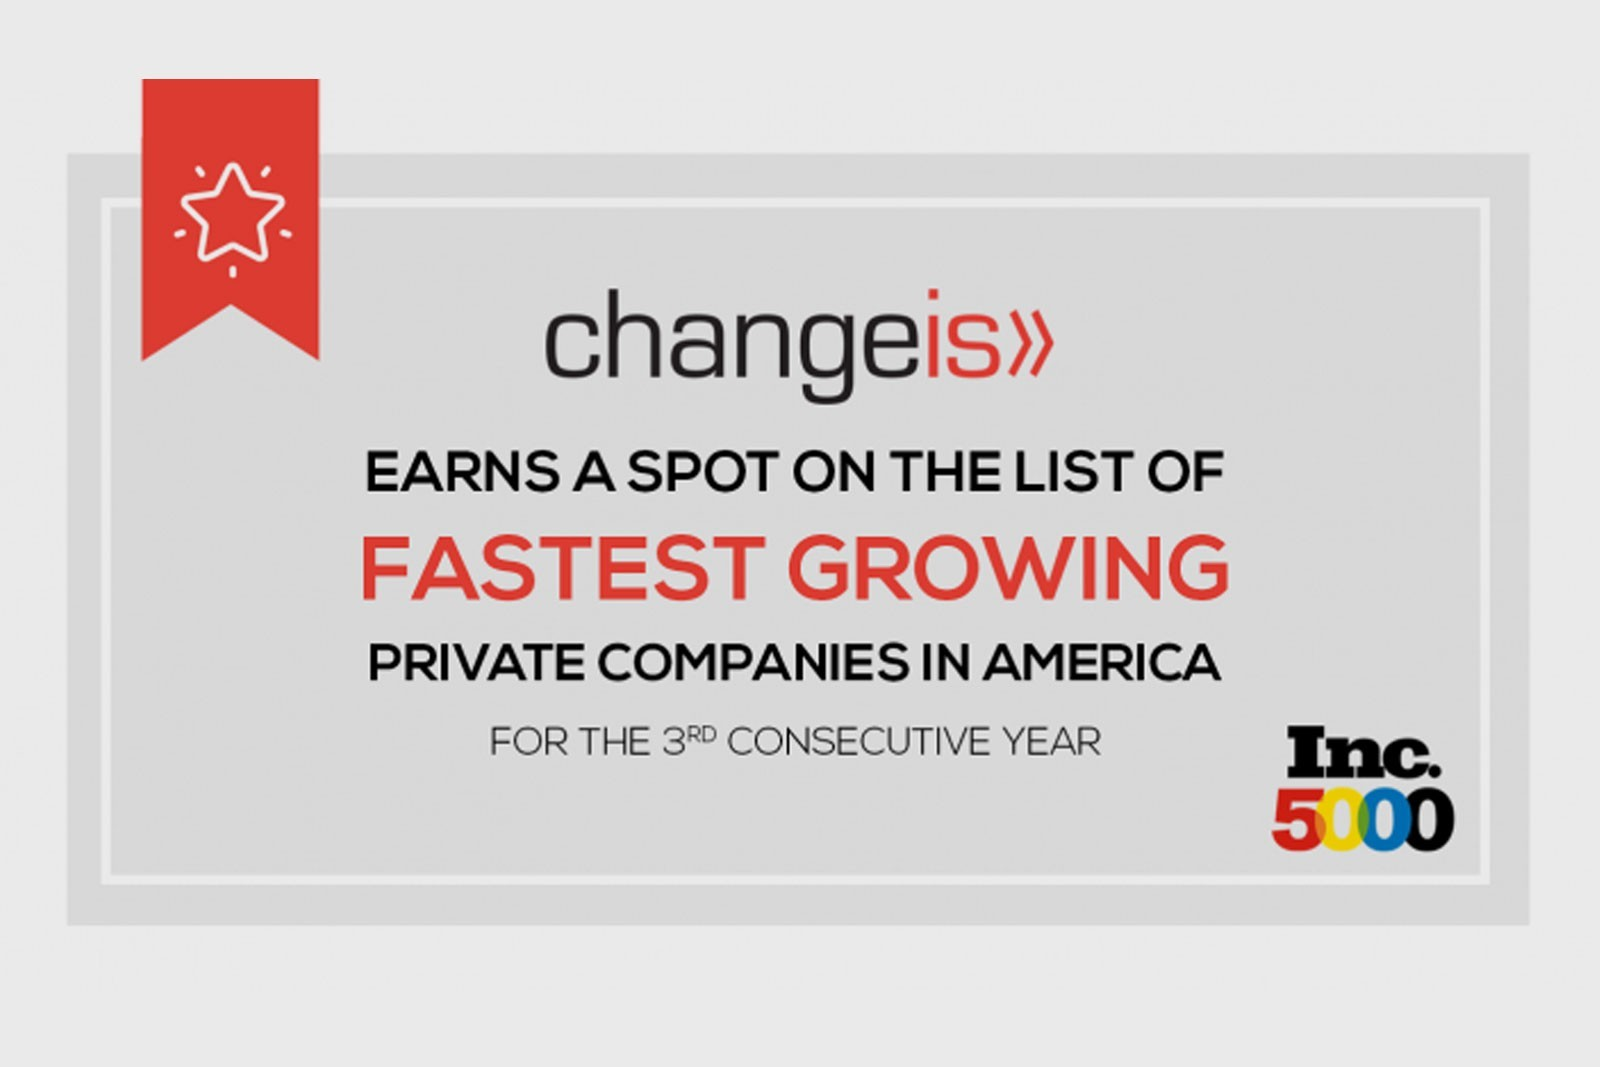 Changeis Awarded Prestigious Place on Inc. 5000 List for Third Consecutive Year